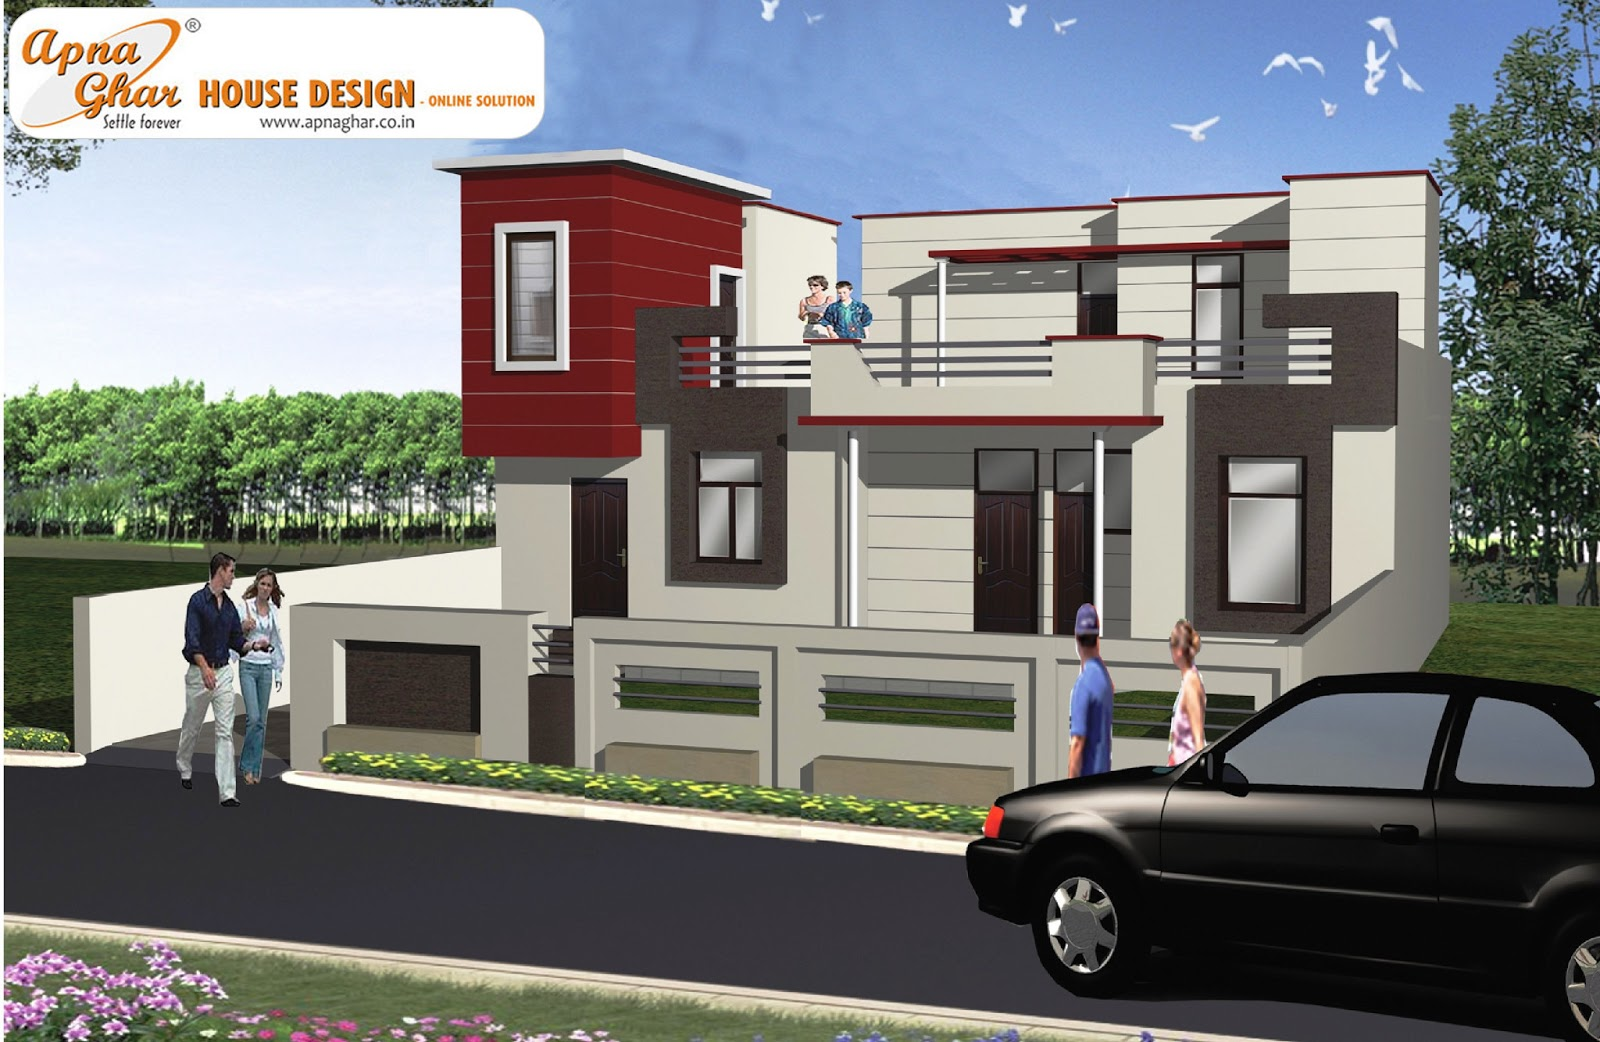 Beautiful duplex house designs 28 images modern for Duplex house models